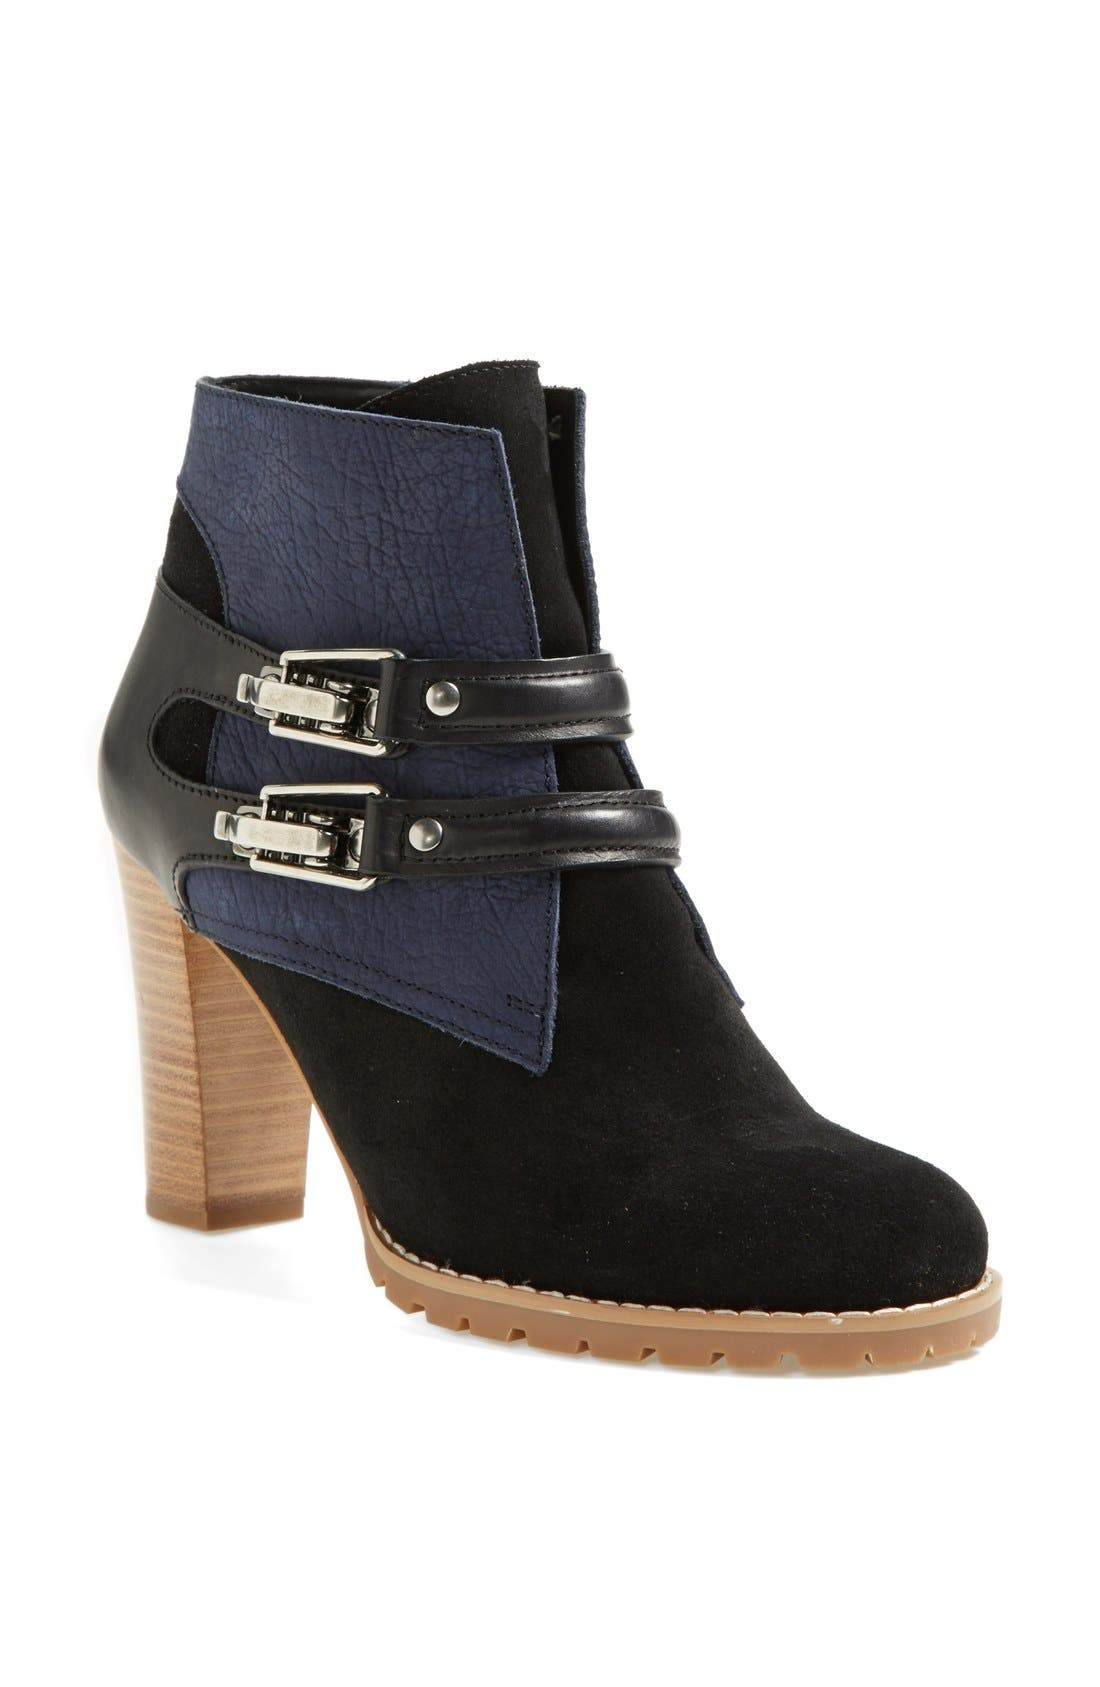 Main Image - See by Chloé 'Katia' Suede & Leather Bootie